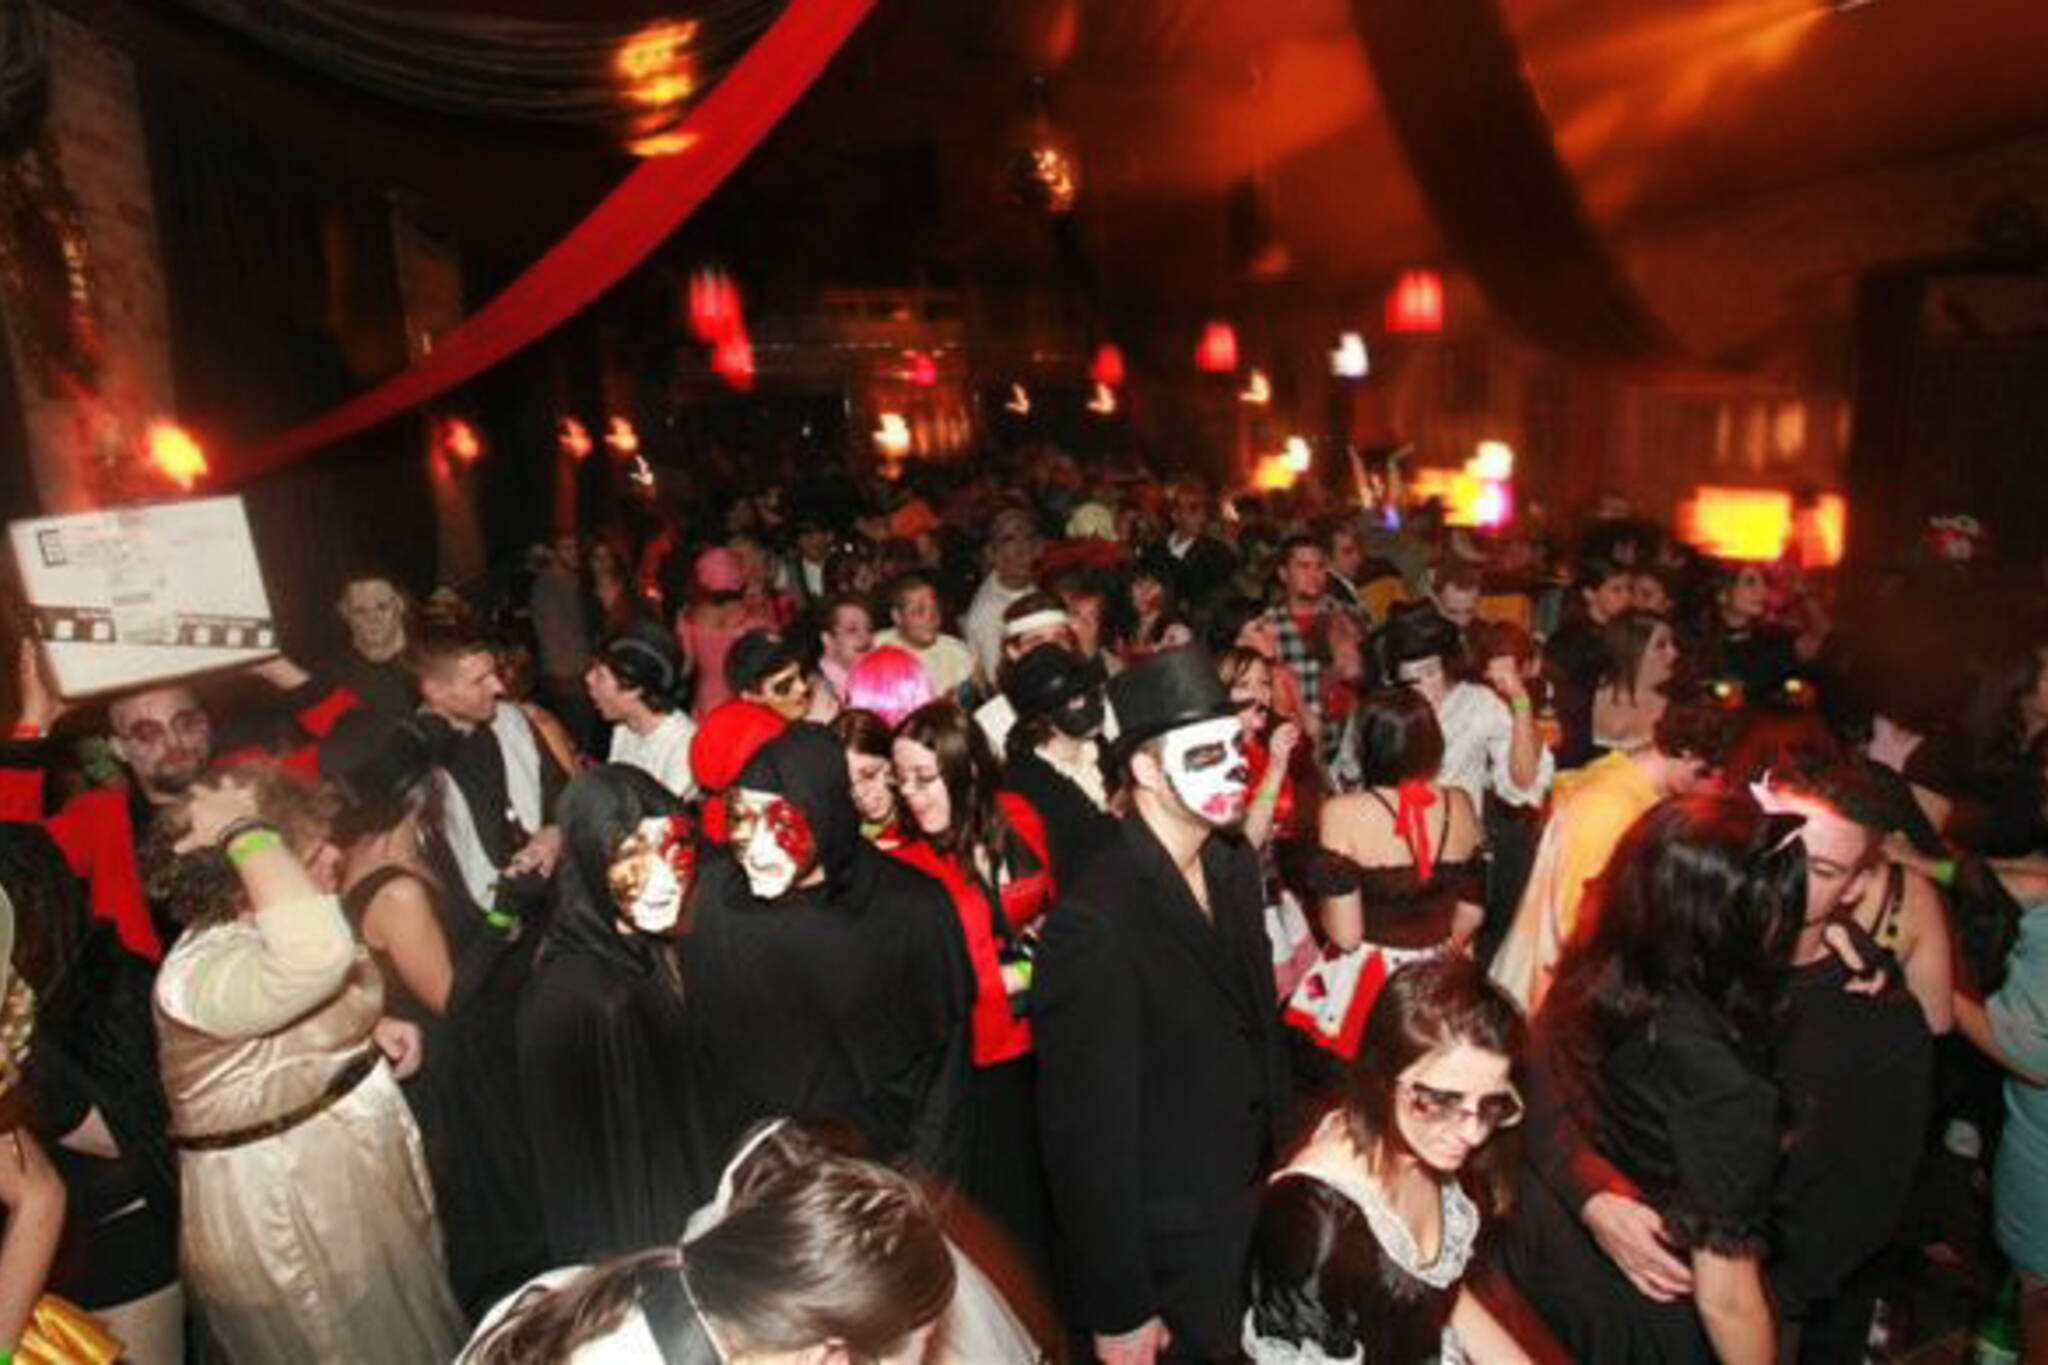 toronto halloween party guide 2013 On where to have a halloween party